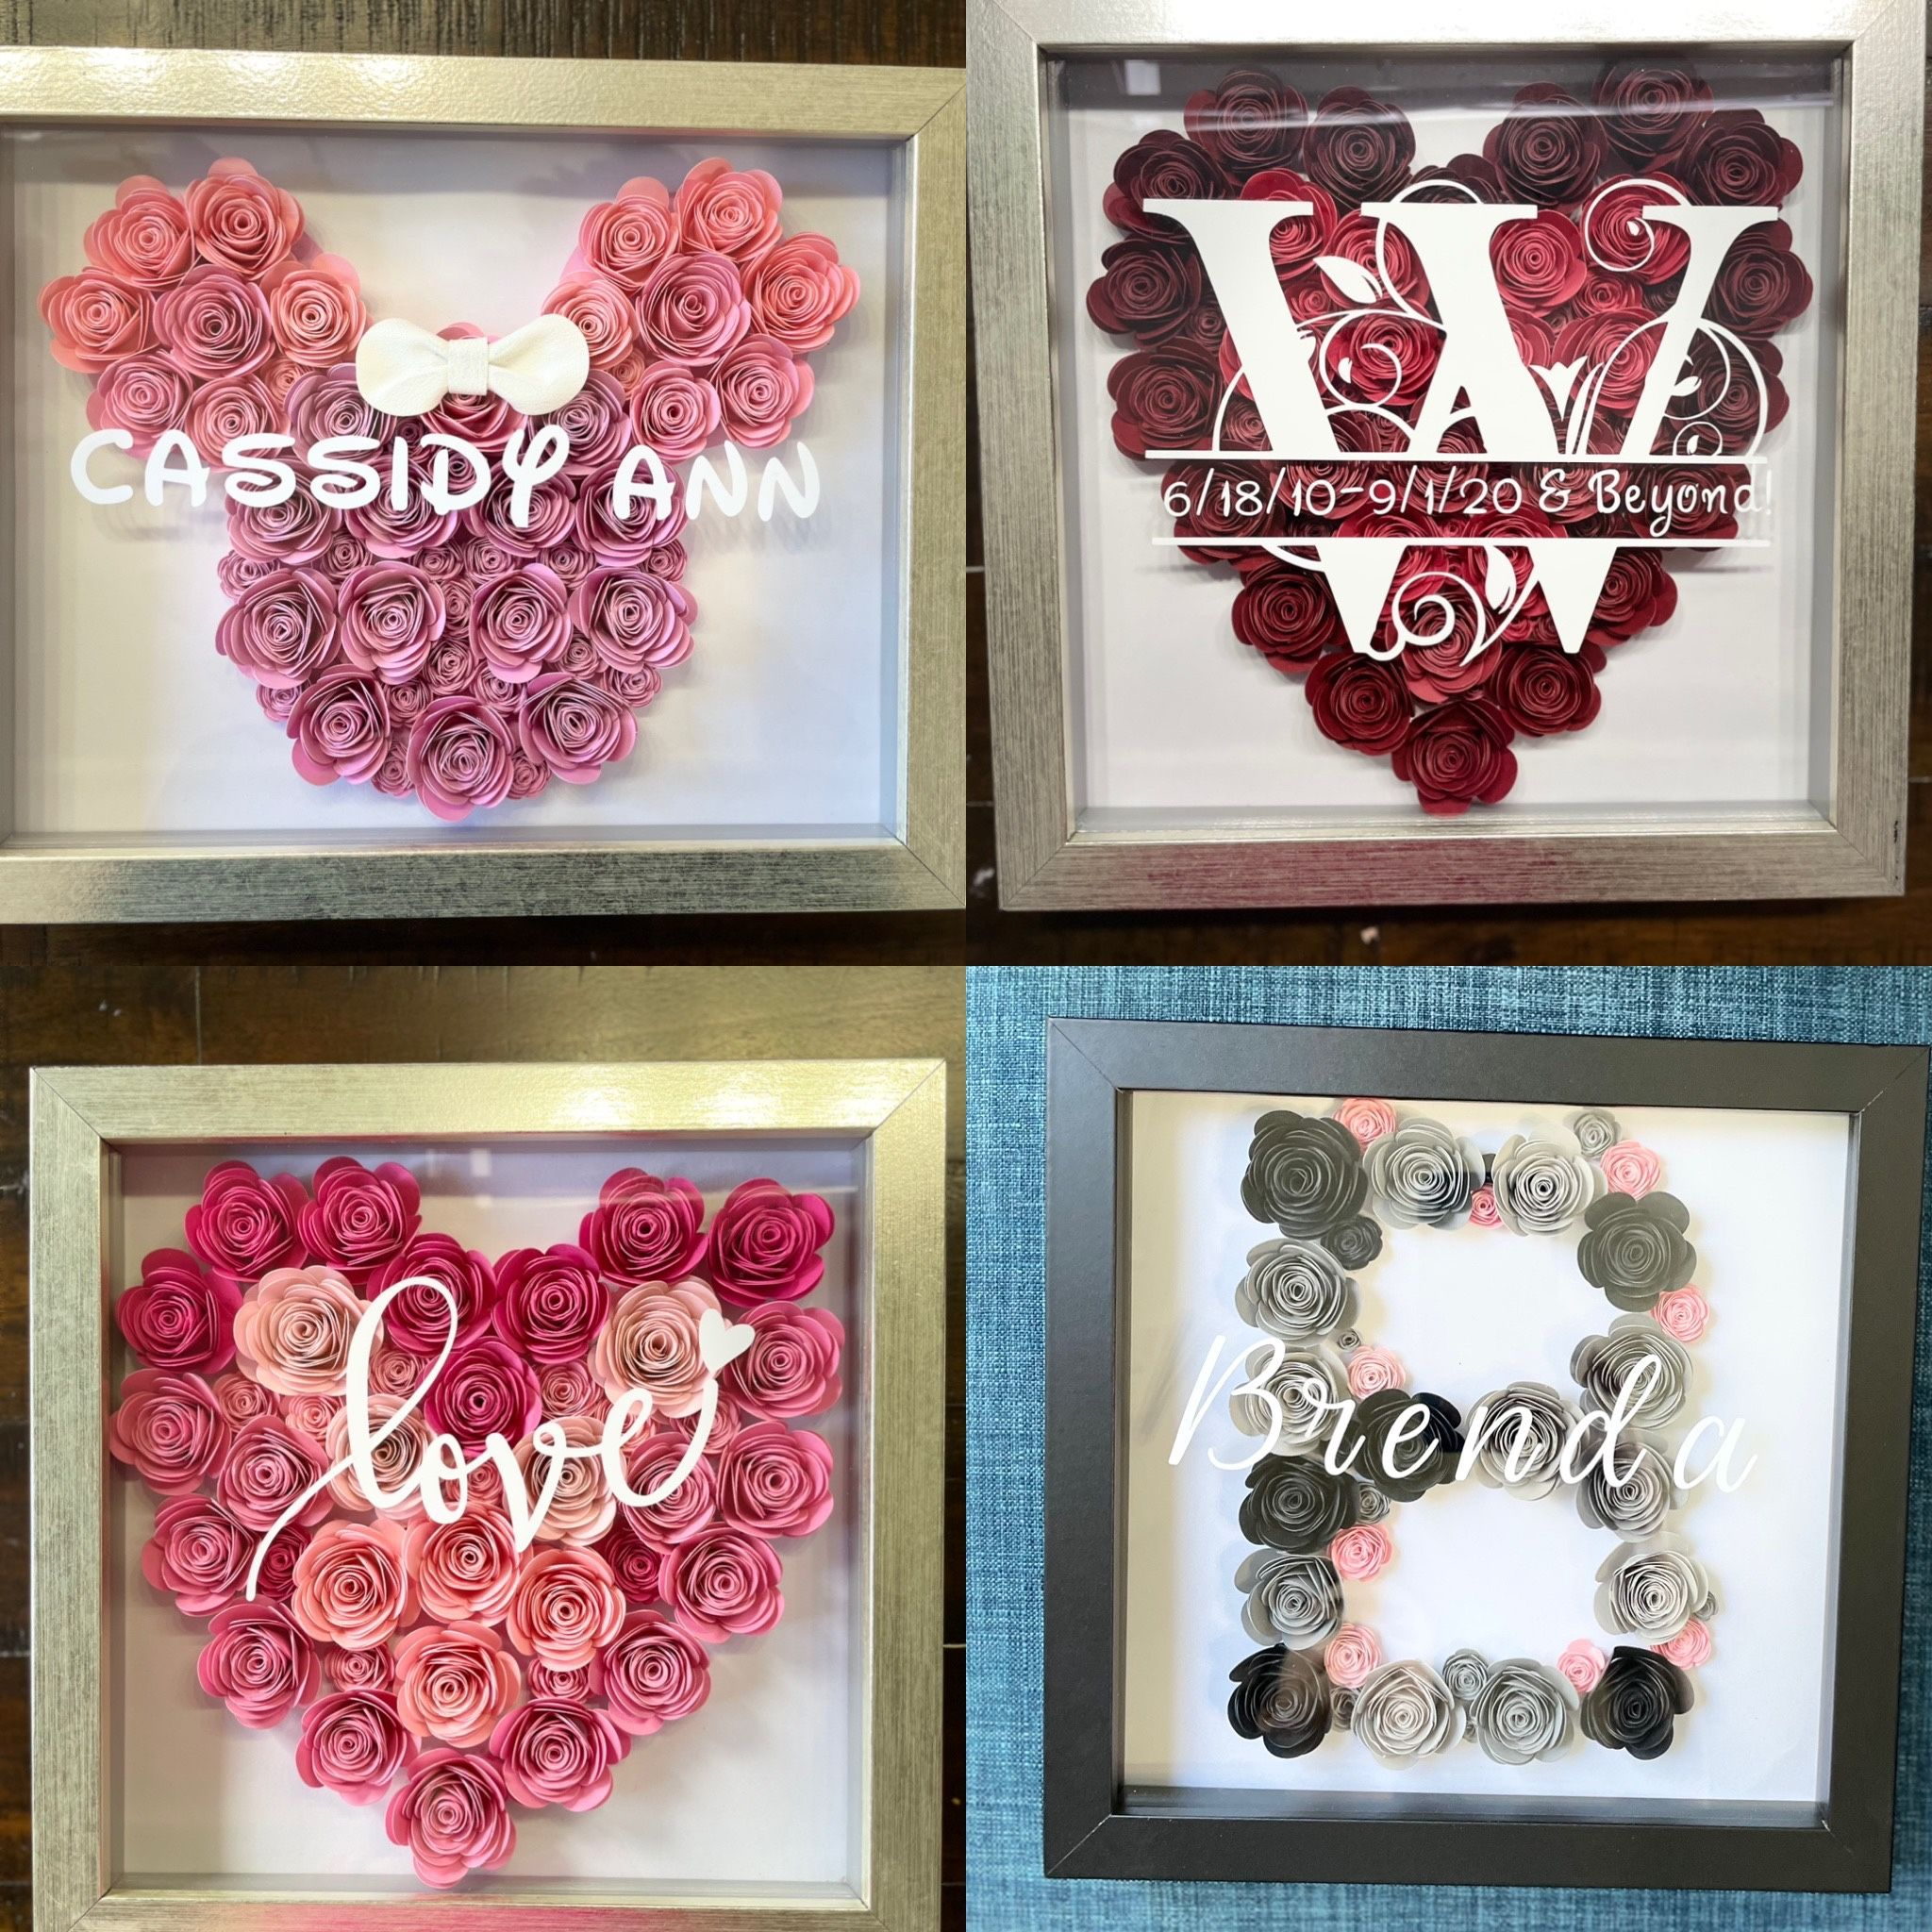 Personalized Rose Shadow boxes for ALL Occasions!